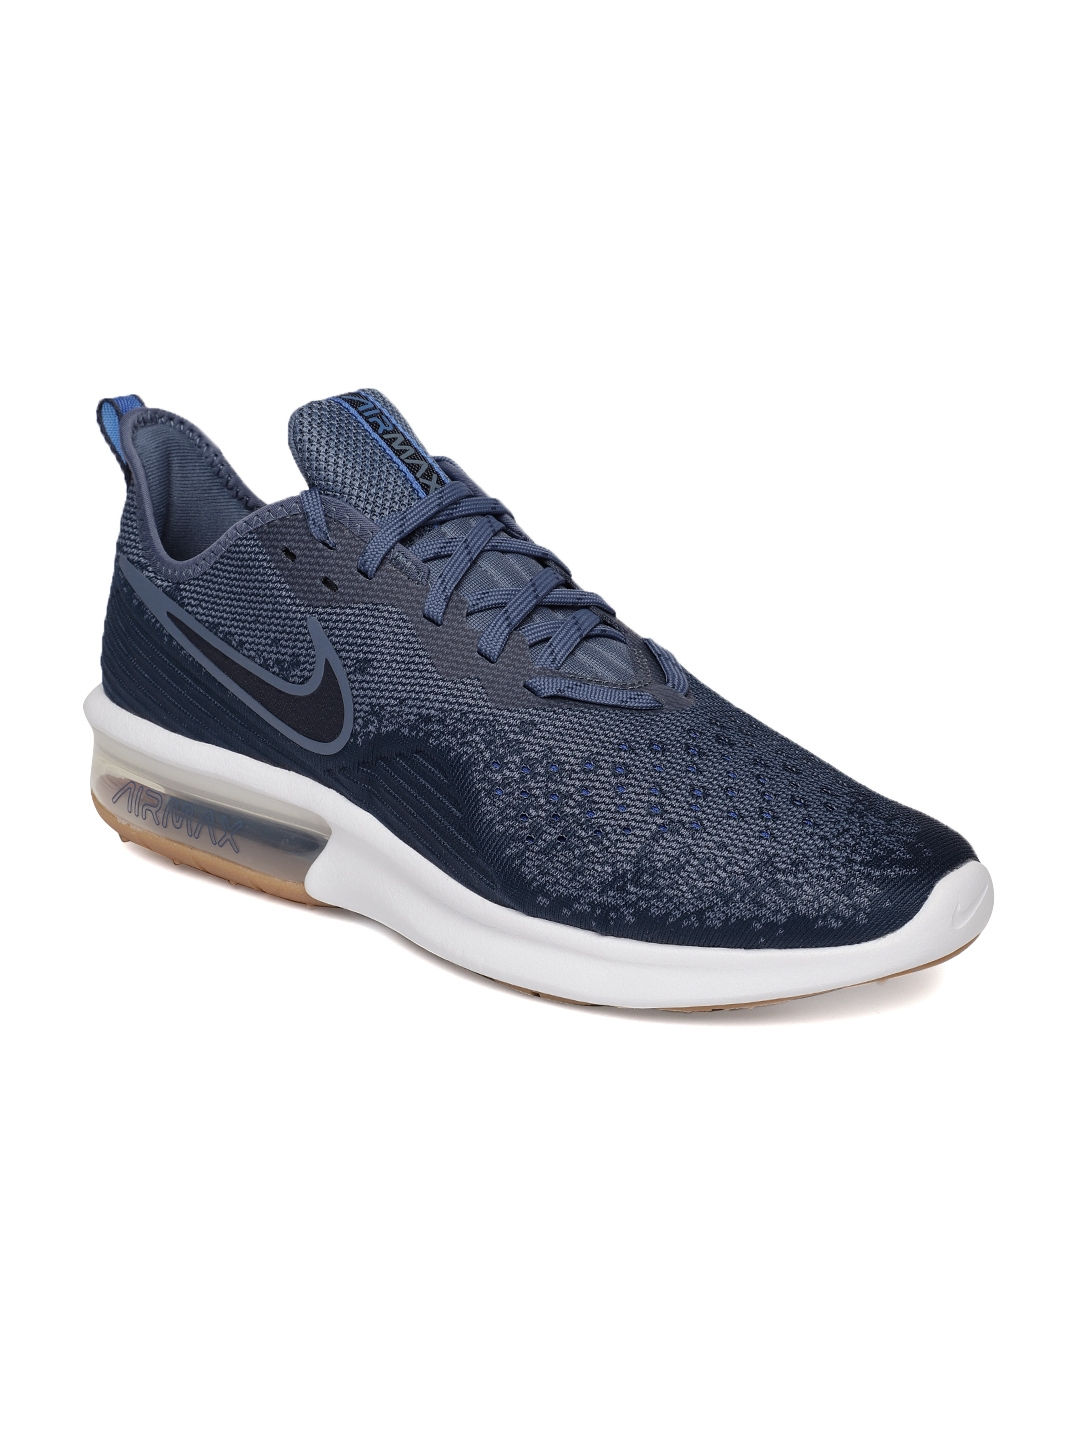 db719dc4da Buy Nike Men Navy Blue Air Max Sequent 4 Sneakers - Casual Shoes for ...